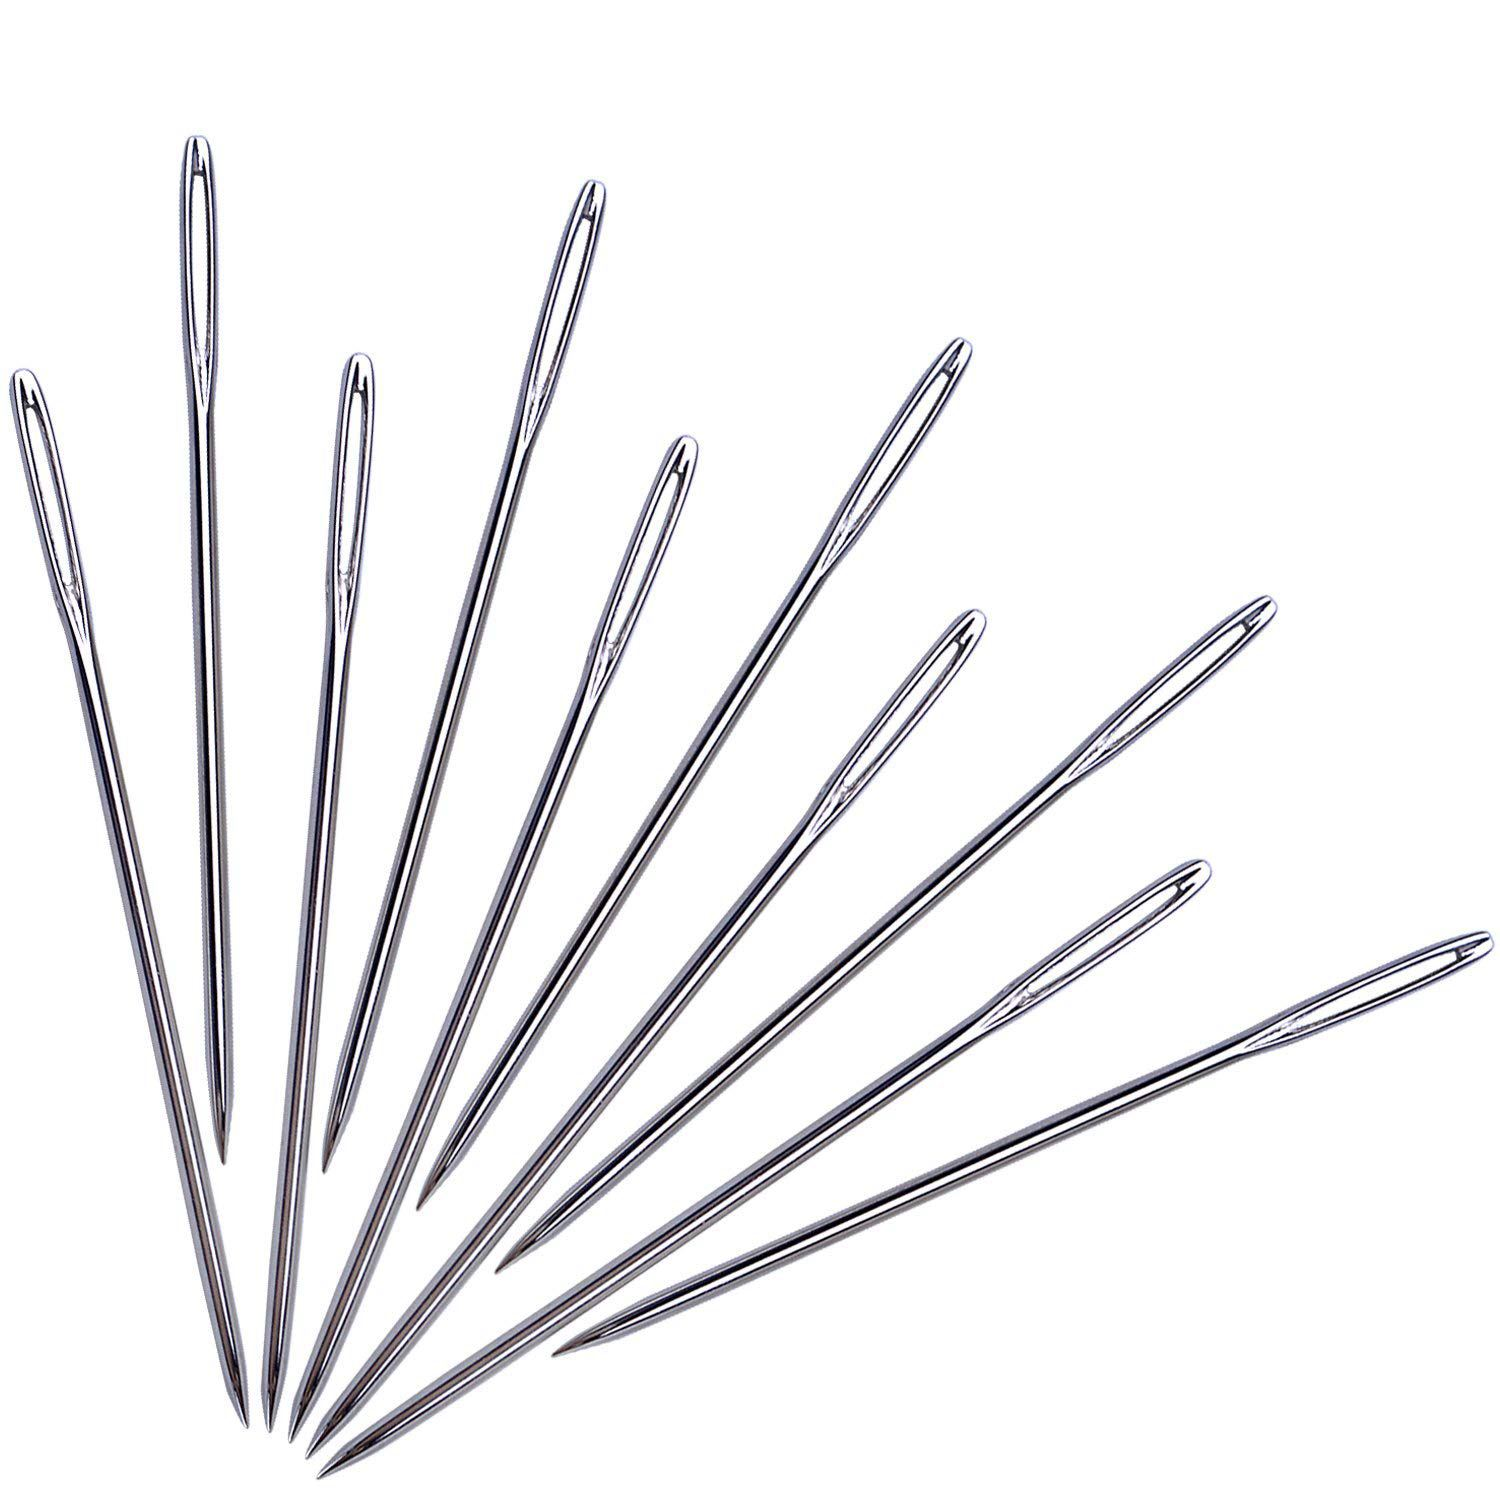 Large-Eye Stitching Needles for Leather Projects with Clear Bottle 7 cm 20 Pieces